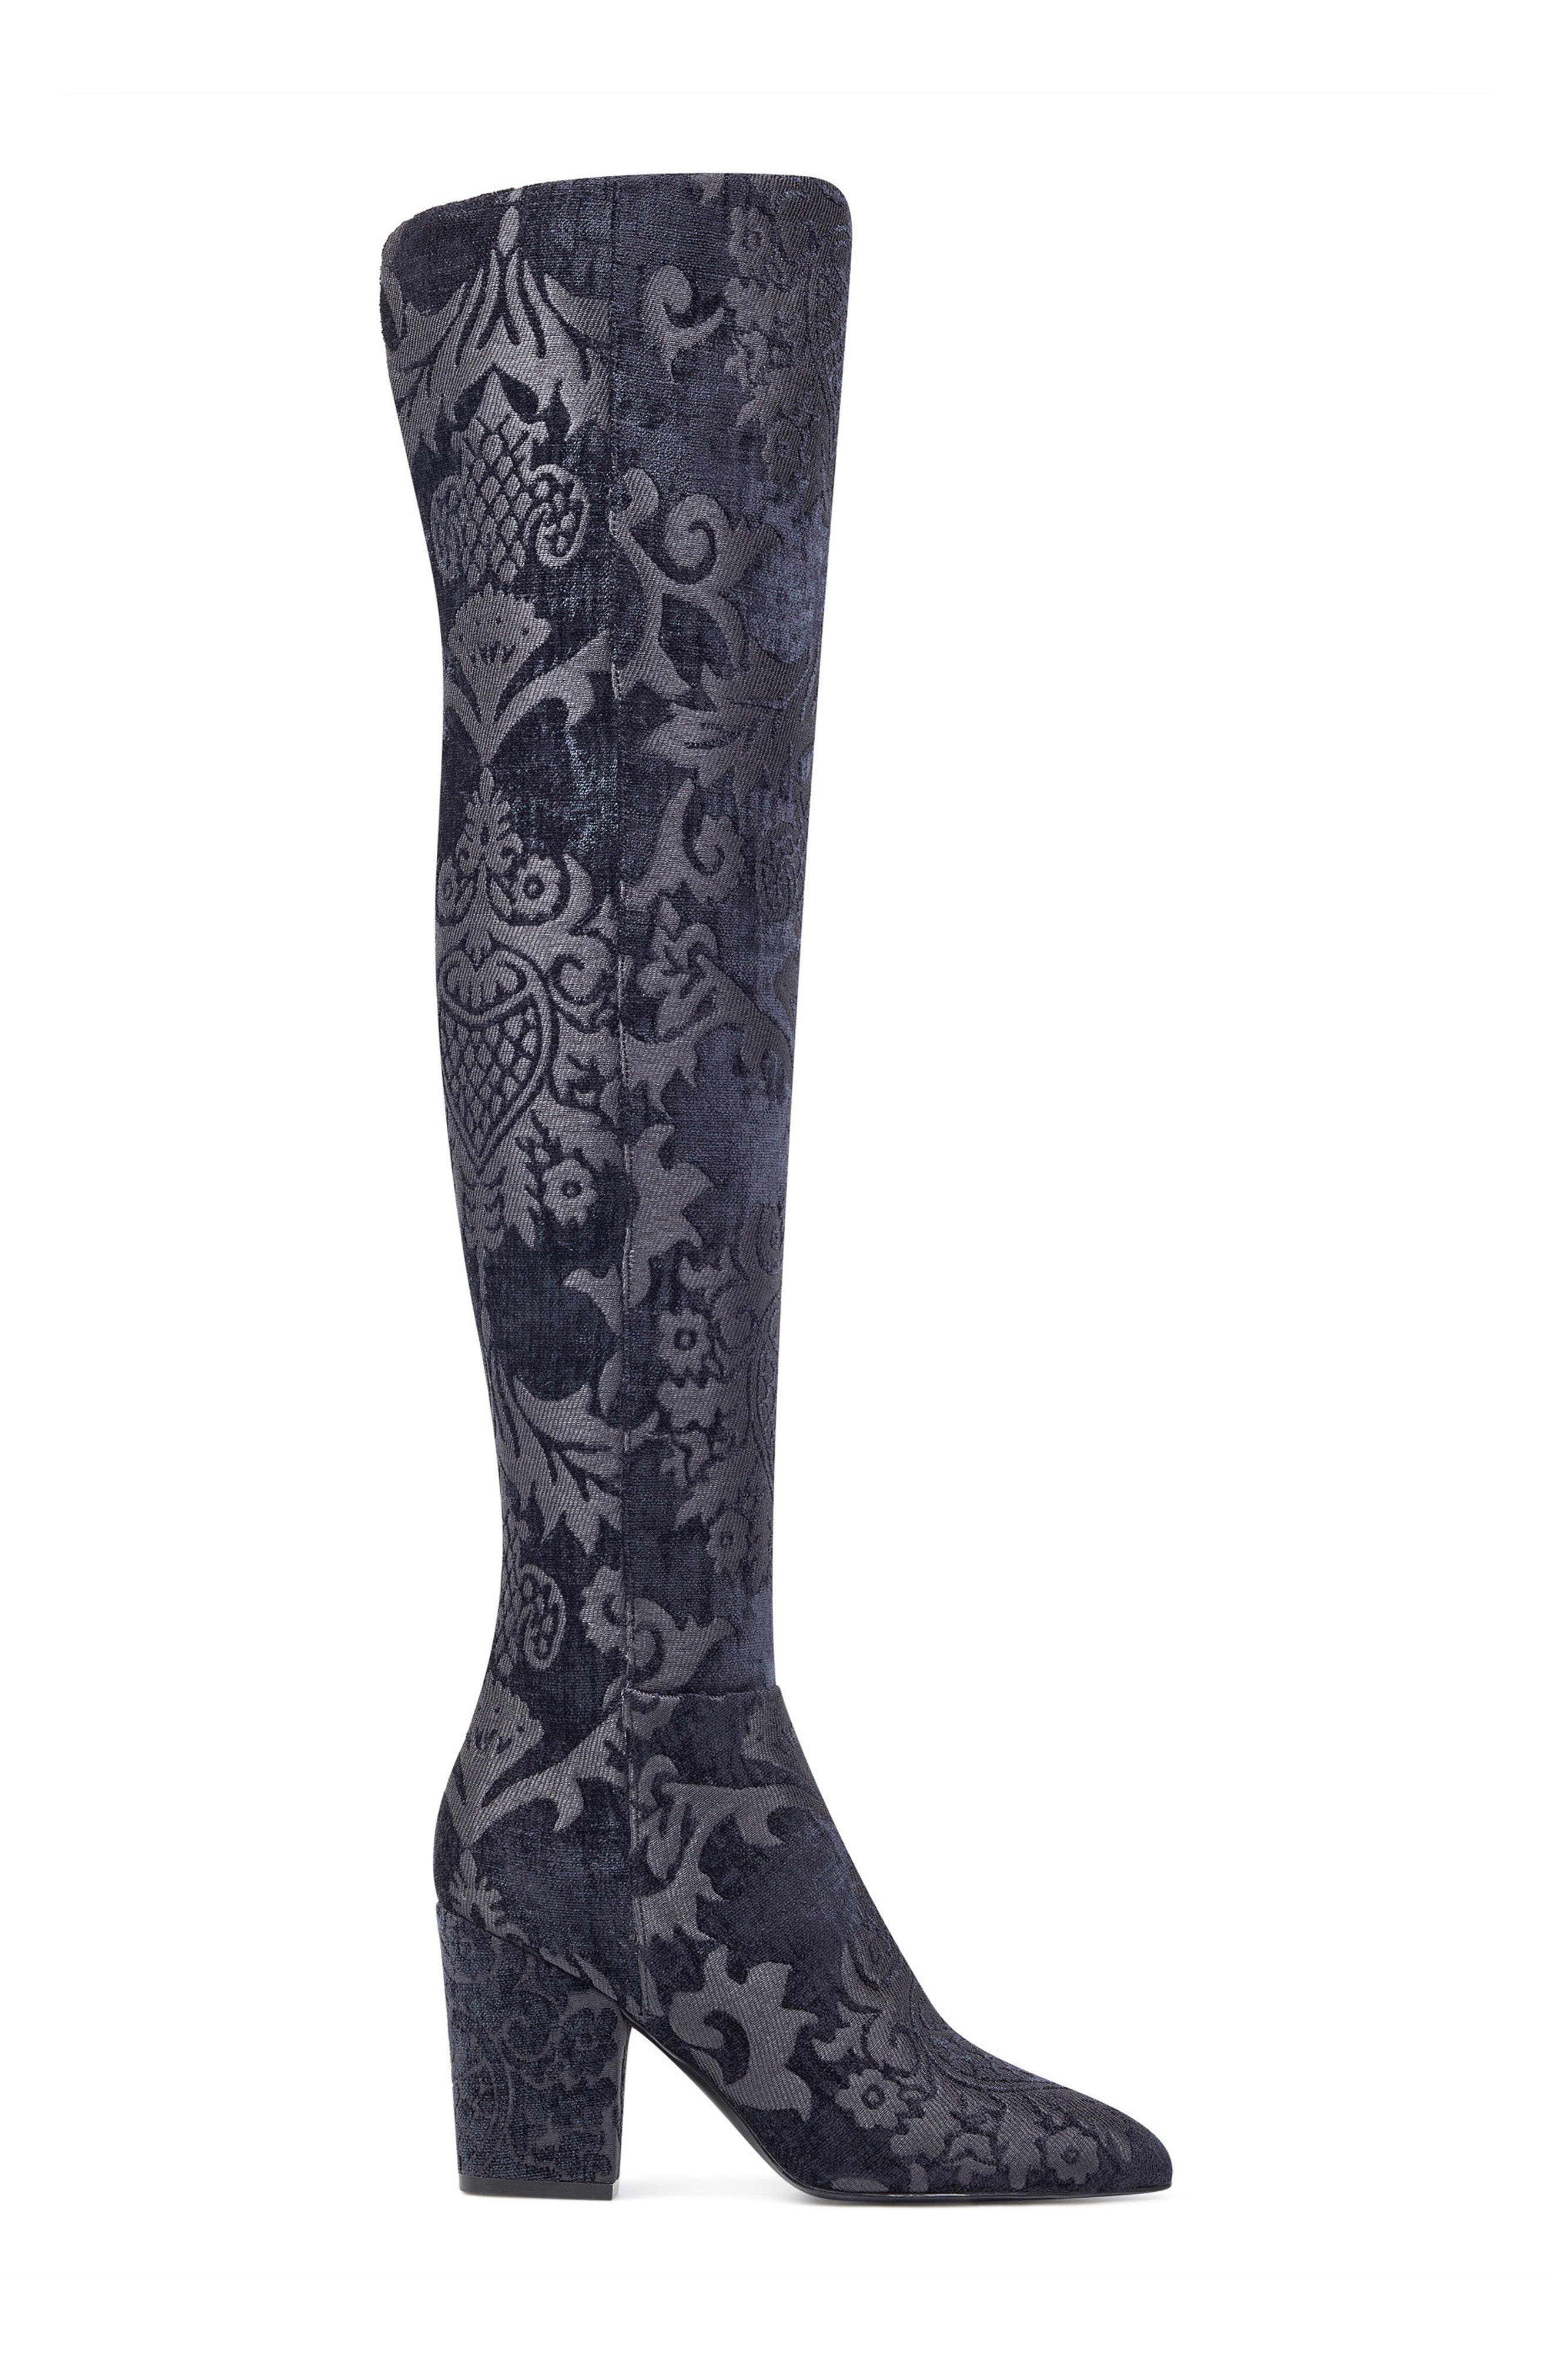 Siventa Over the Knee Boot,                             Alternate thumbnail 3, color,                             001